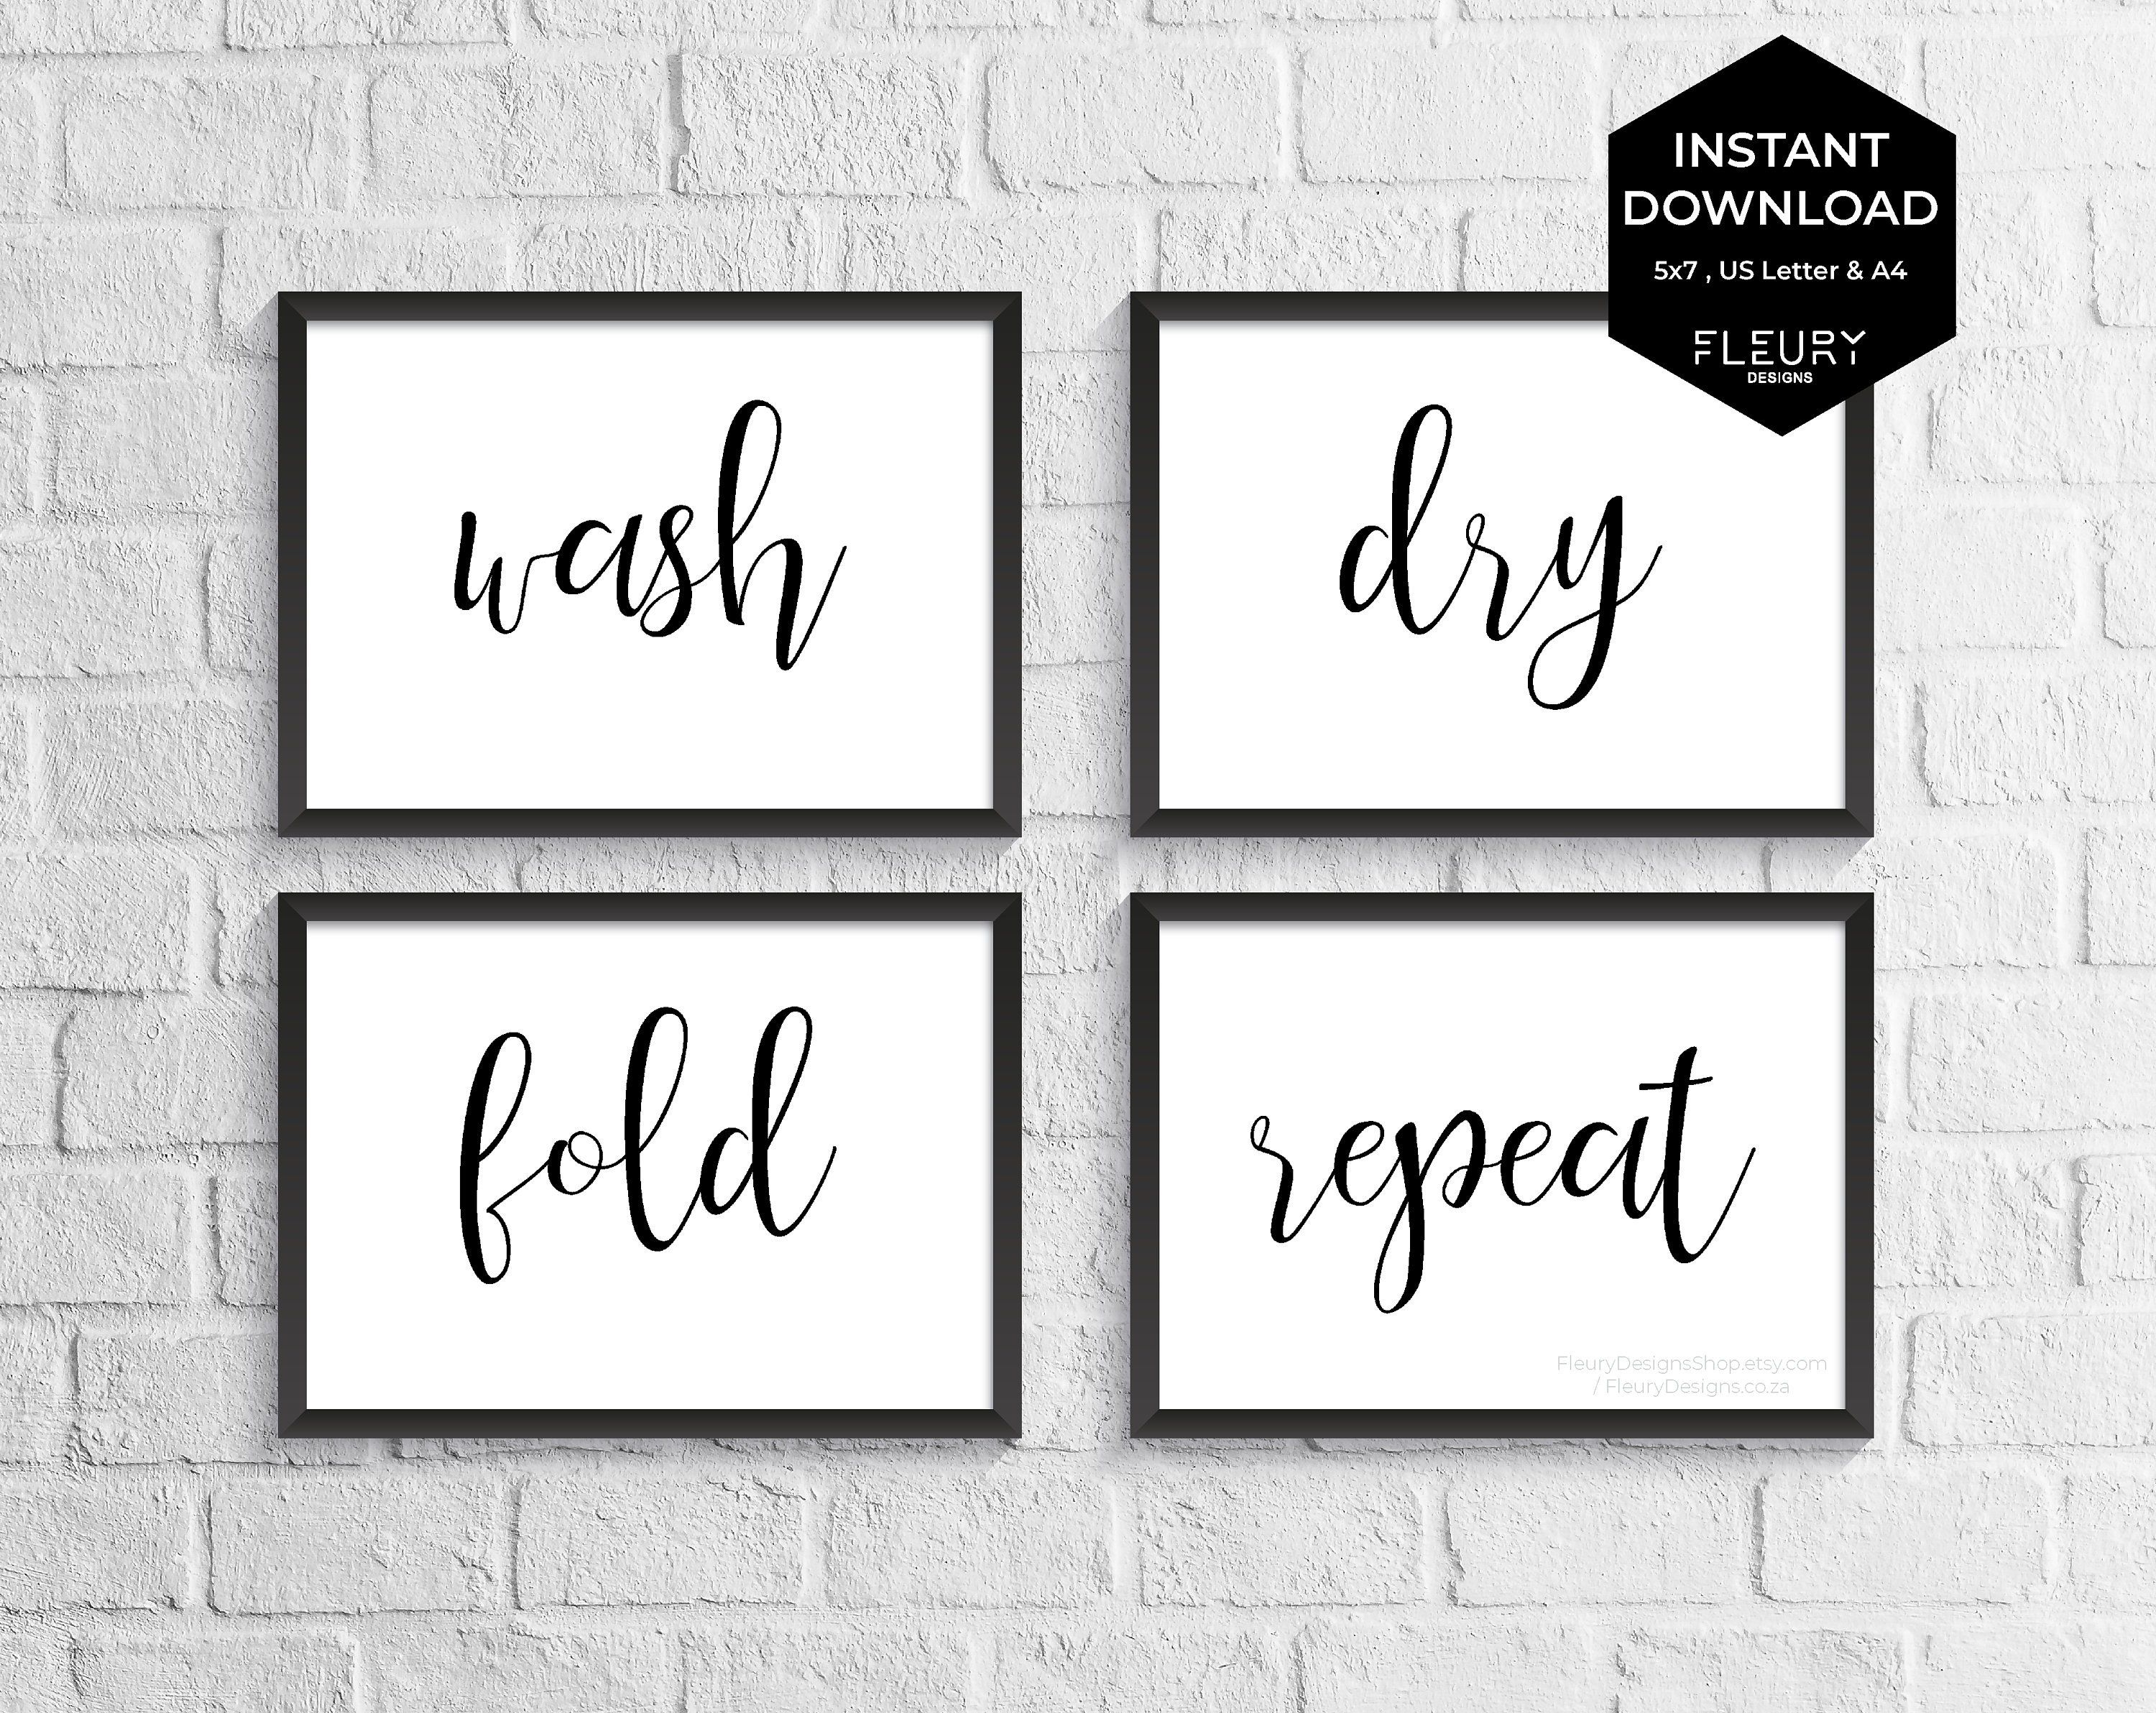 Laundry Room Printable Set Instant Download Wash Dry Fold Repeat Print Funny Laundry Room Art Laundry Room Diy Laundry Room Quote Laundry Room Art Wash Dry Fold Laundry Room Quotes